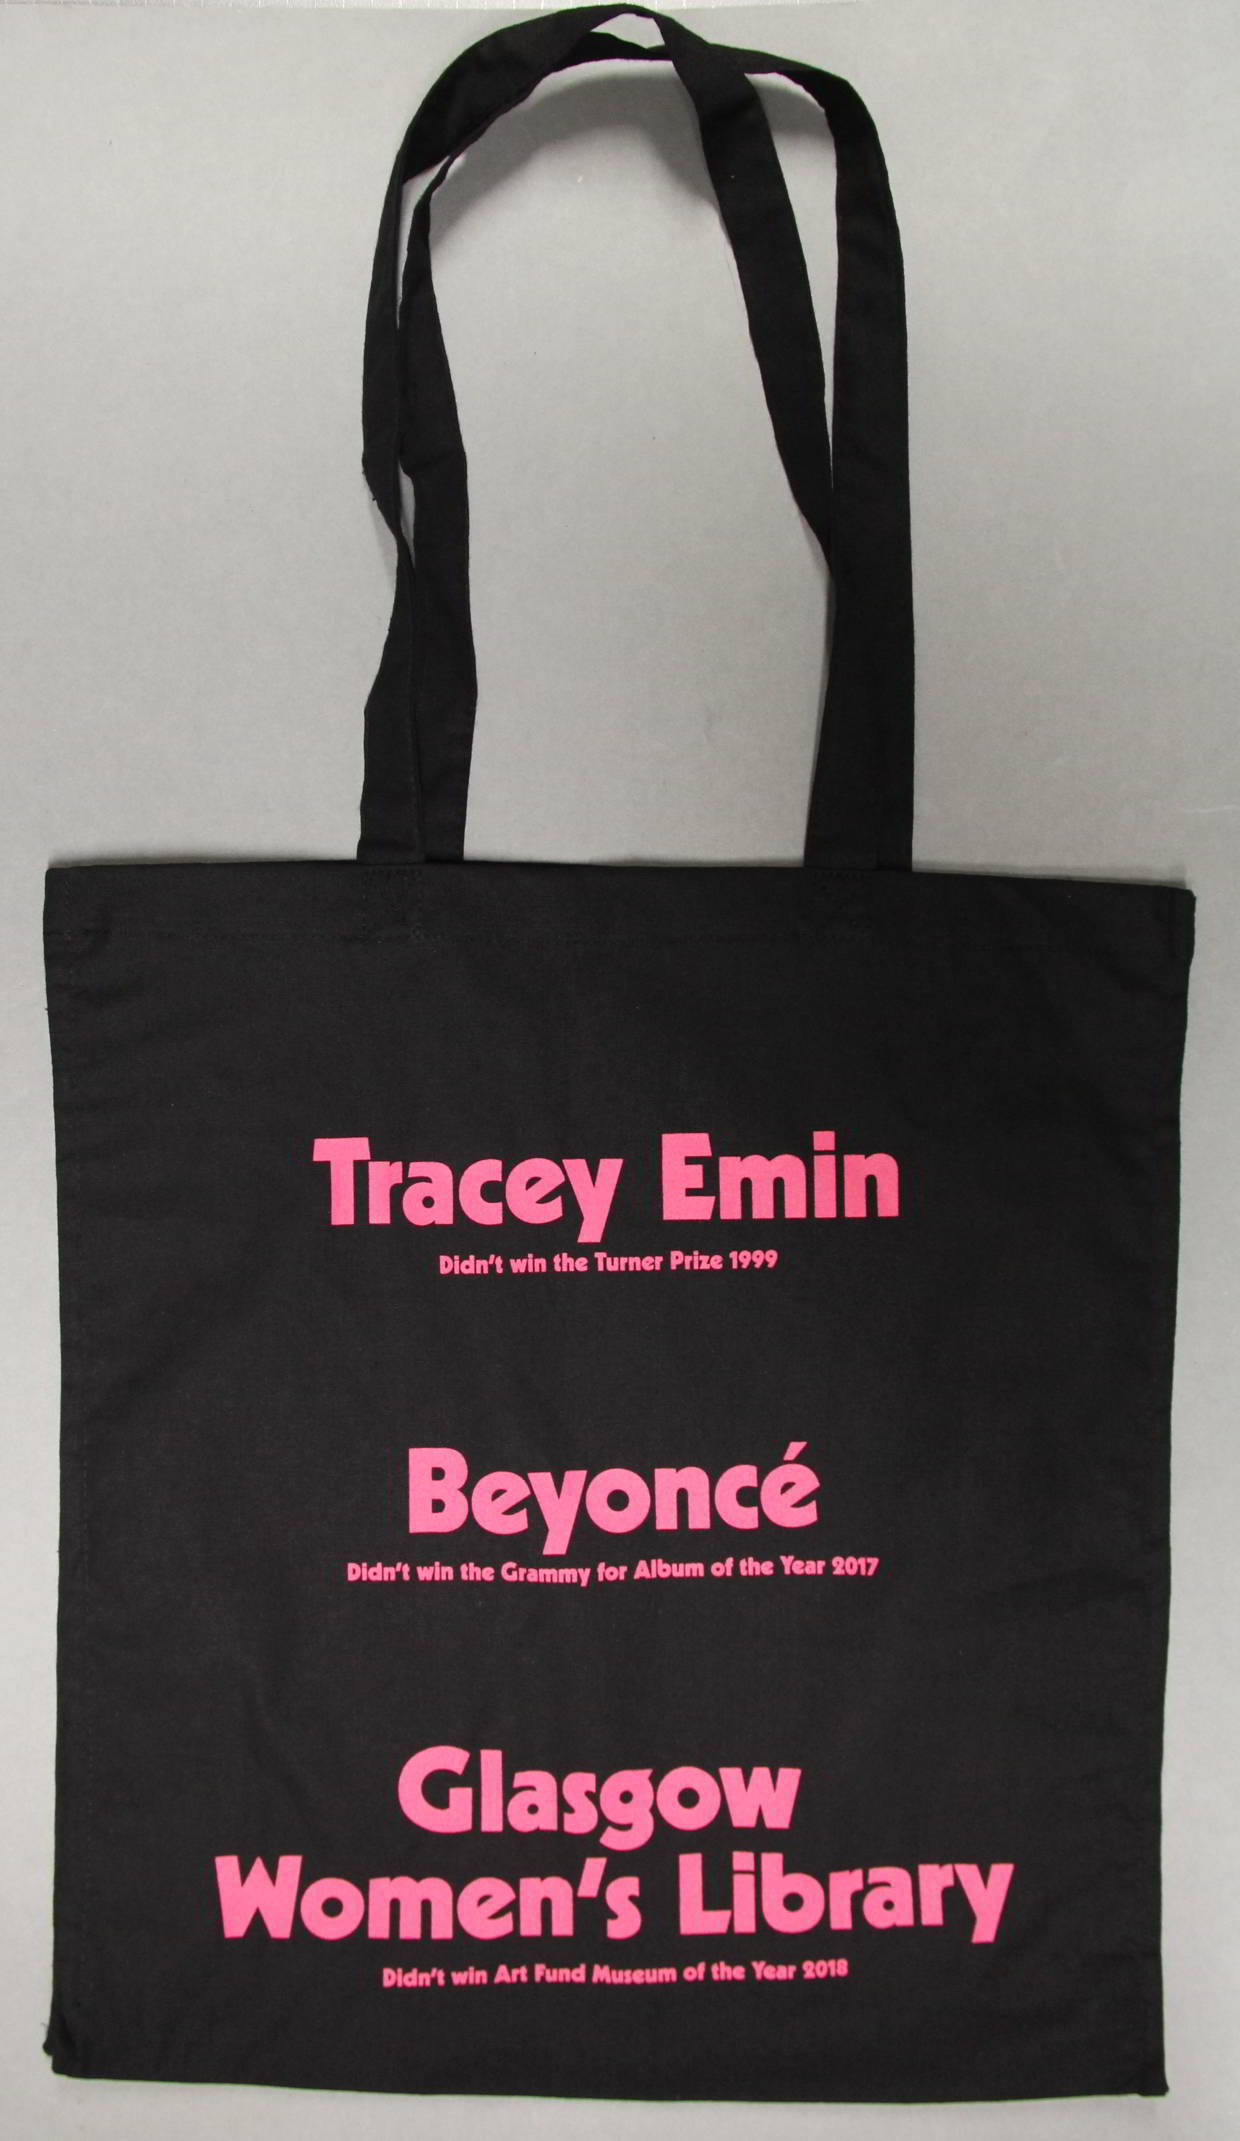 Black bag with bright pink text. The text reads 'Tracey Emin' [in large letters] 'Didn't win the Turner Prize 1999' [In smaller writing]. The rest of the text echoes this style of a larger name and smaller text. 'Beyonce didn't win the Grammy for album of the year 2017' and 'Glasgow Women's Library didn't win Art Fund Museum of the Year 2018'